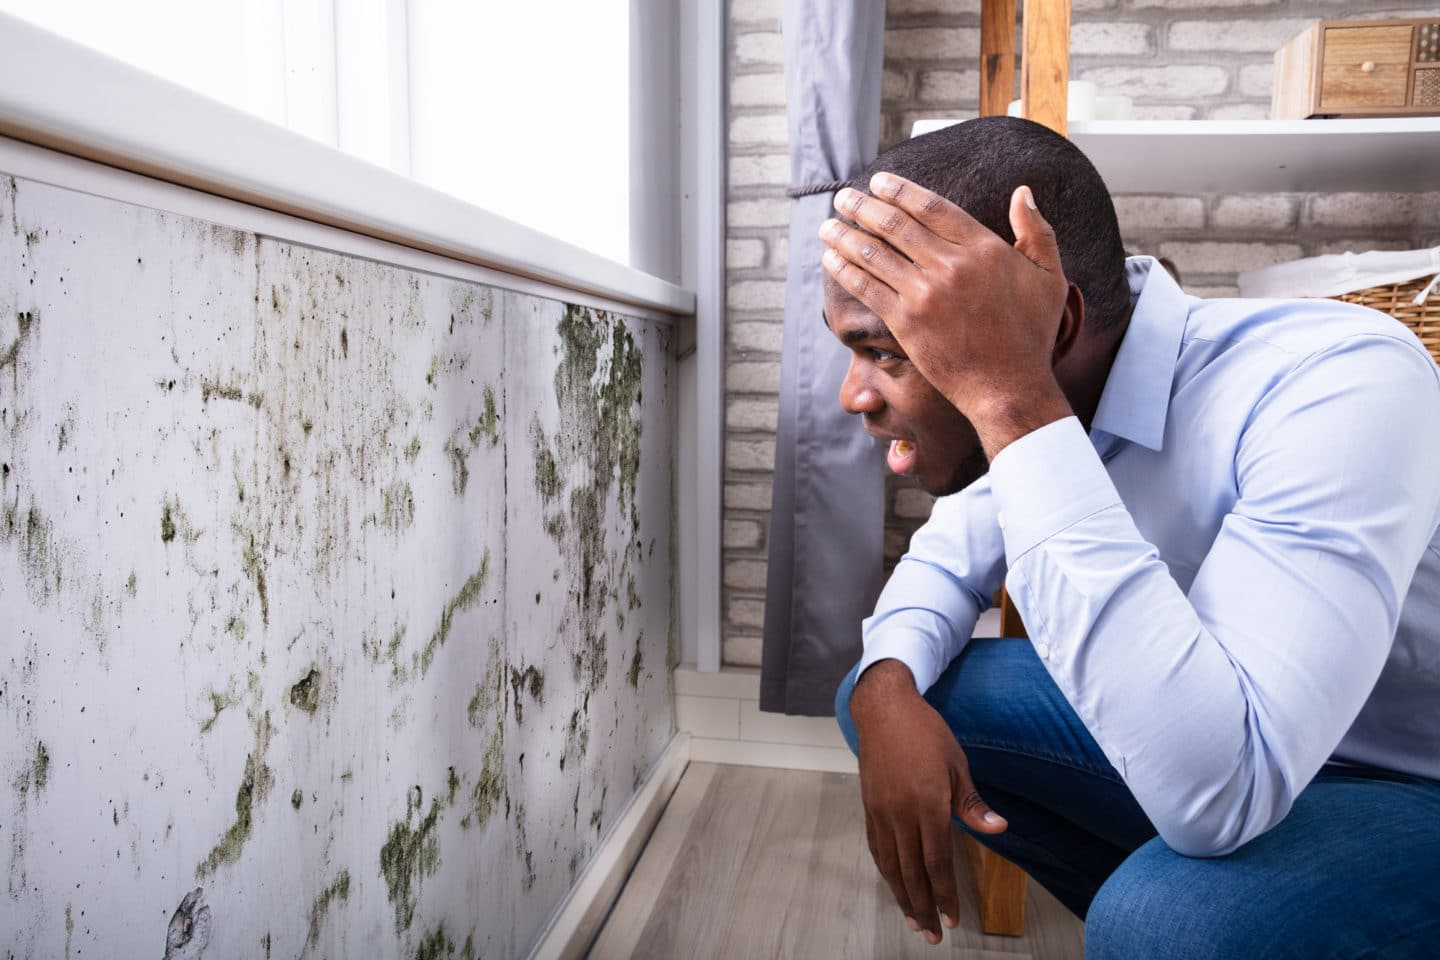 Side View Of A Shocked Young Man Looking At Mold and Mildew On Wall